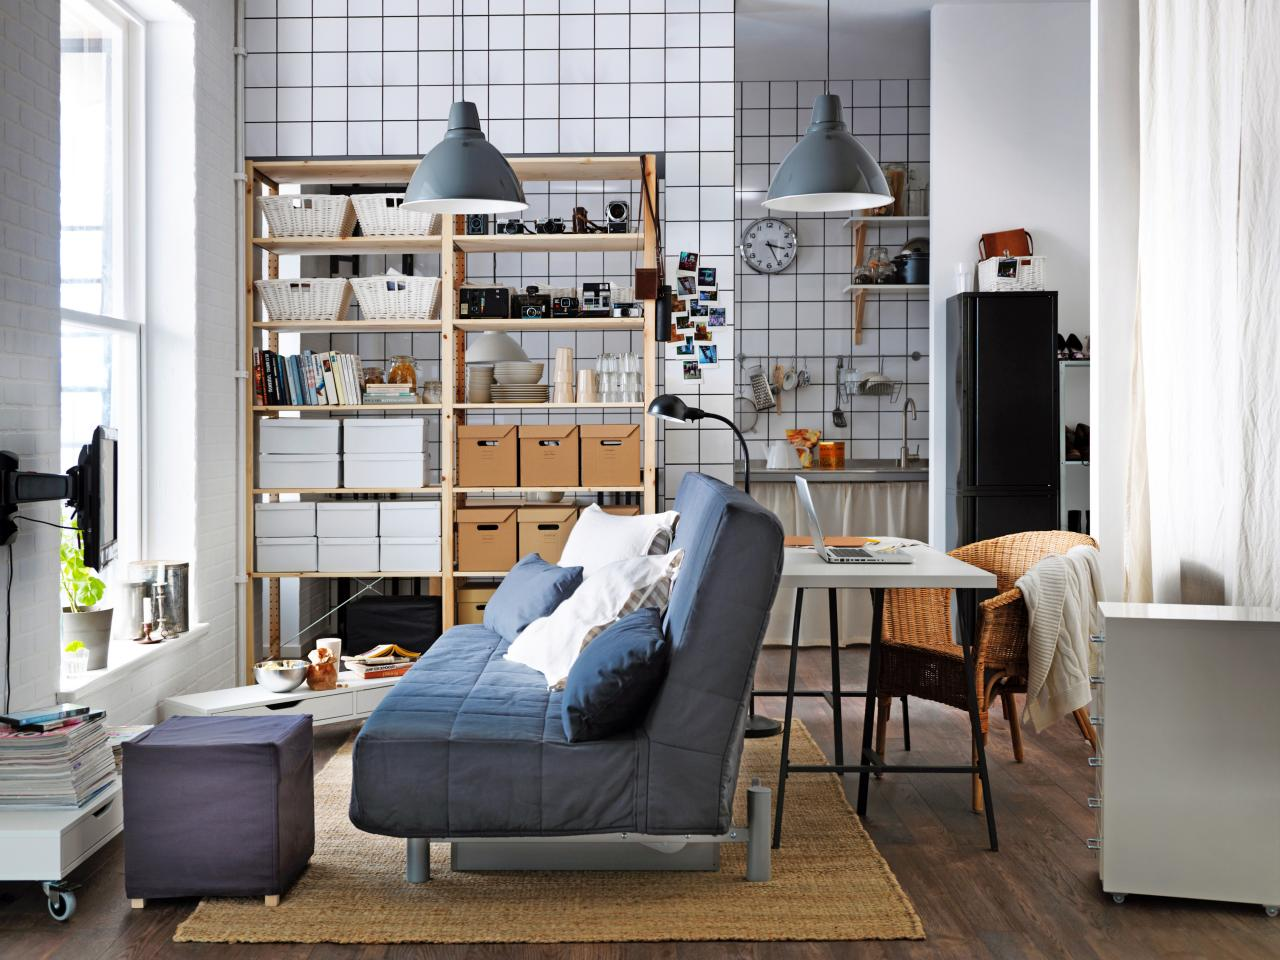 Living In A Tiny Studio? Here Are 12 Ways To Make It Work